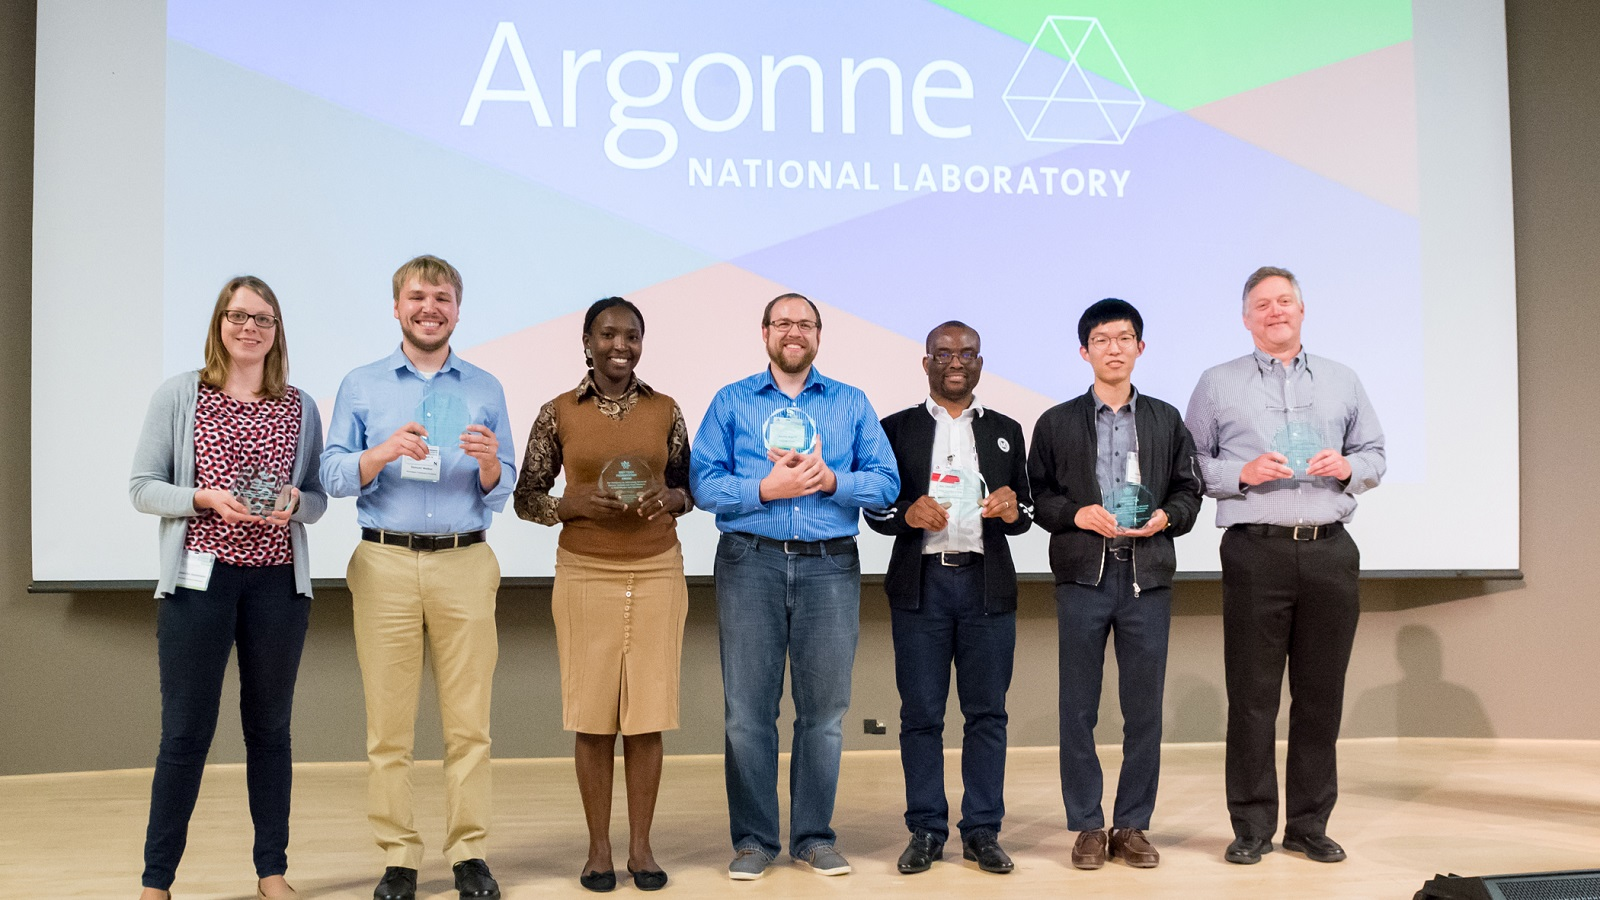 These seven students received awards for the best presentations at the end of Argonne's two-week Modeling, Experimentation and Validation summer school. (Image by Argonne National Laboratory.)